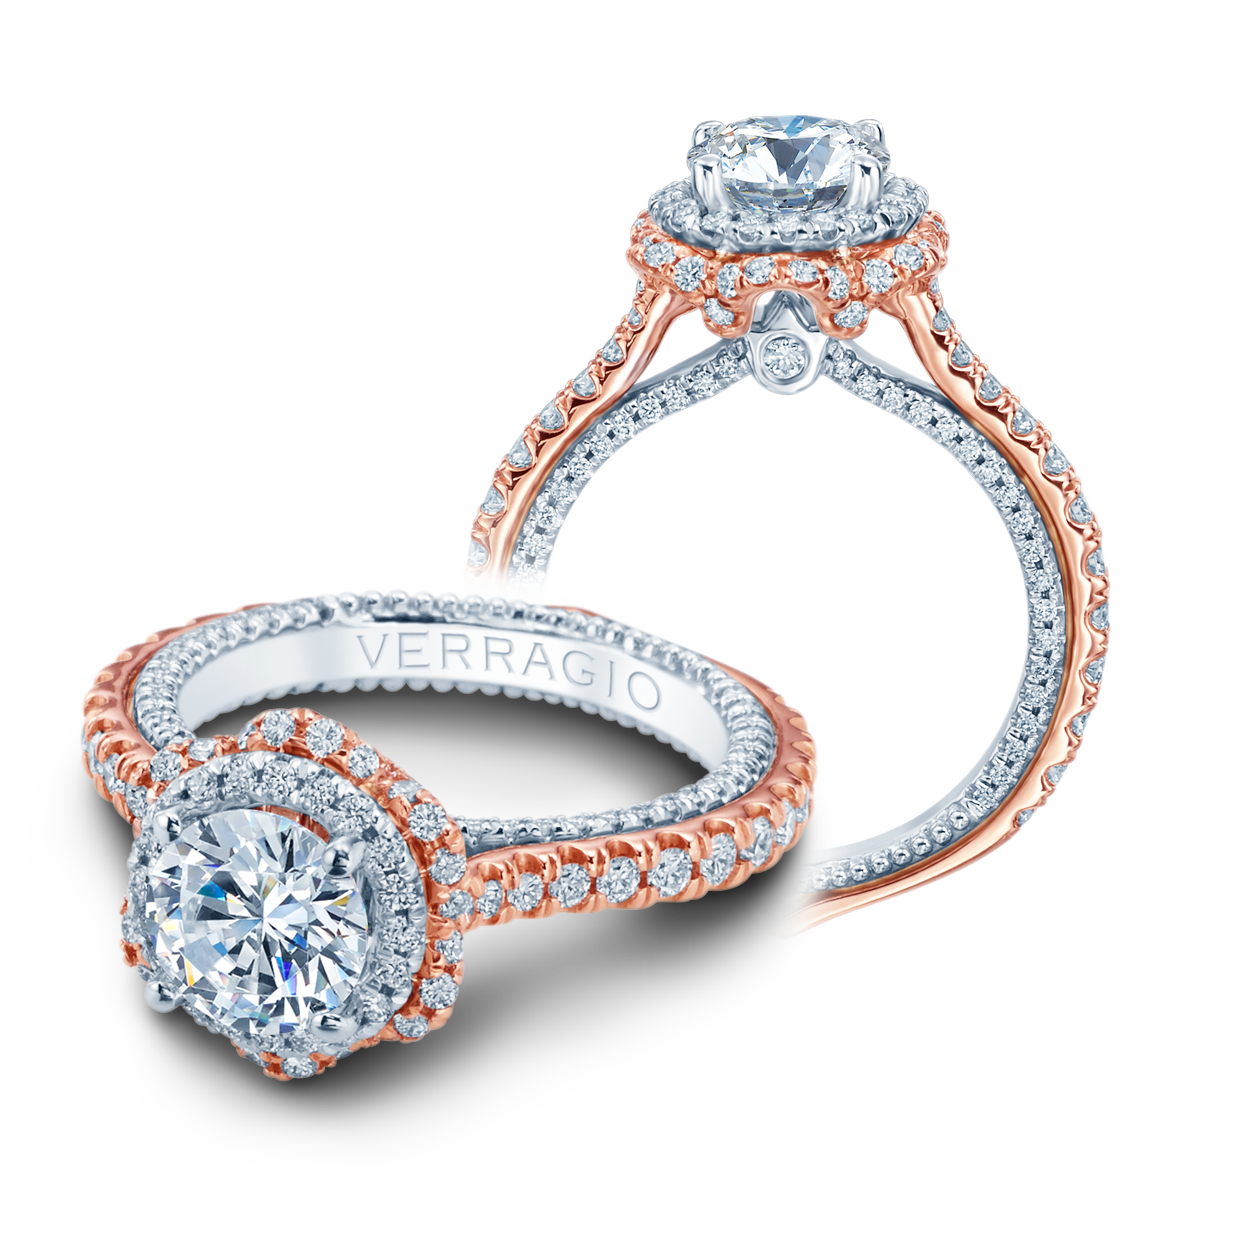 dress - Engagement Verragio rings: the couture collection pictures video